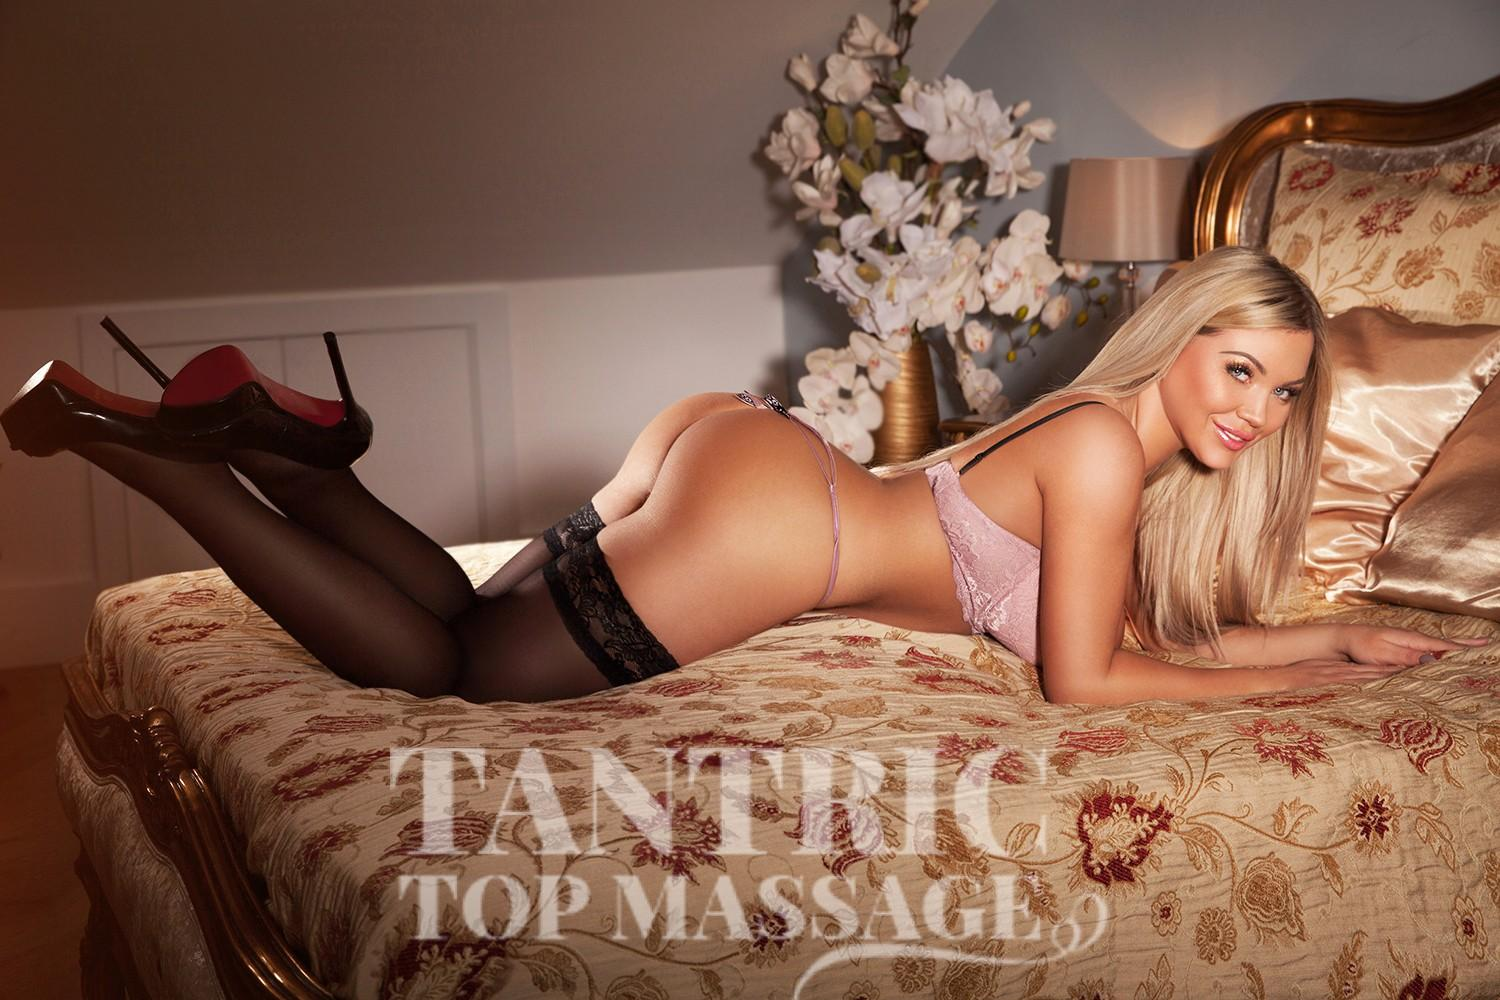 Mona from Tantric Top Massage